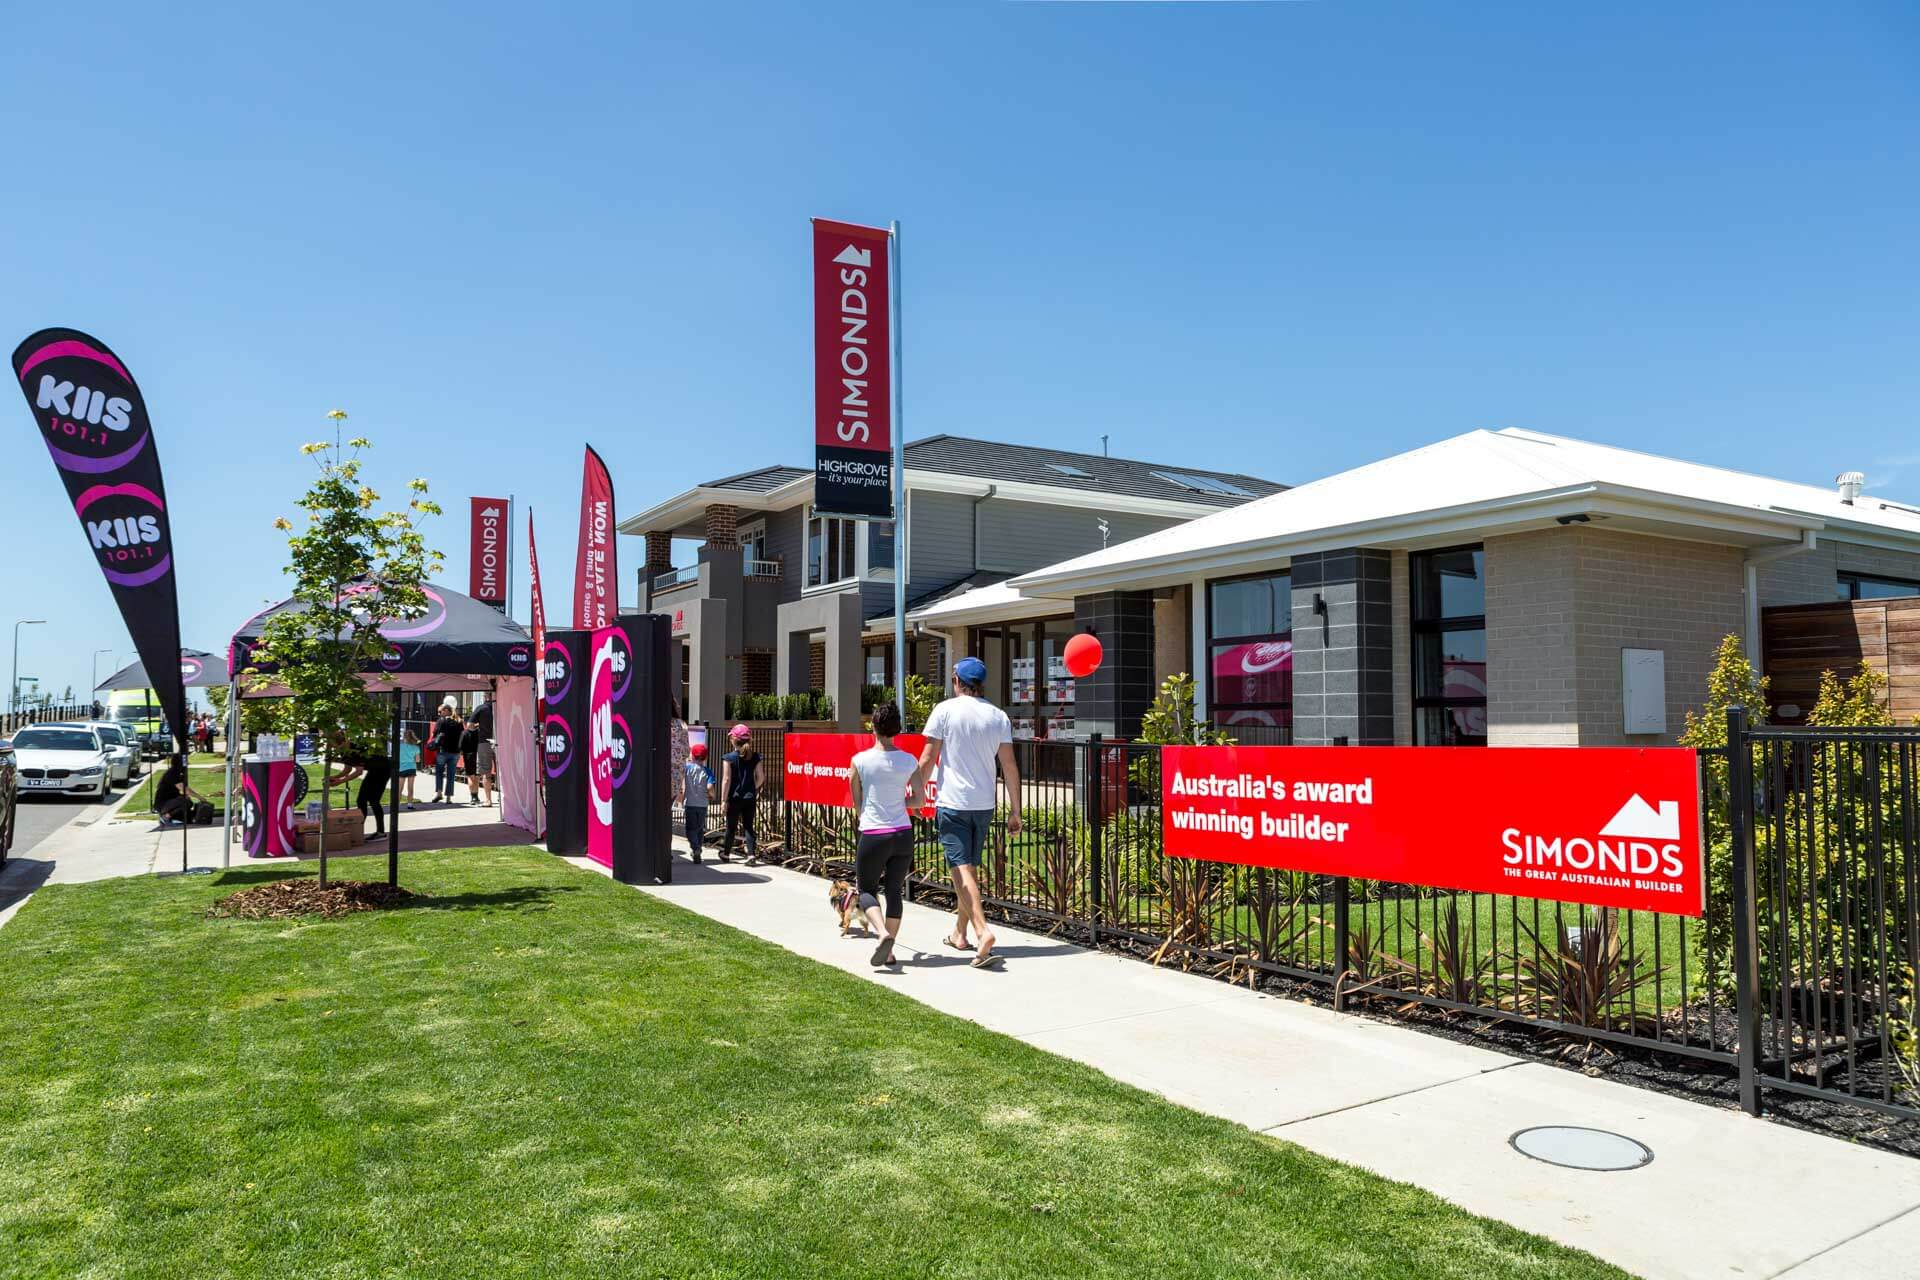 simonds building developer houses and kiis radio show at an outdoor public event for people to view new house builds and show homes